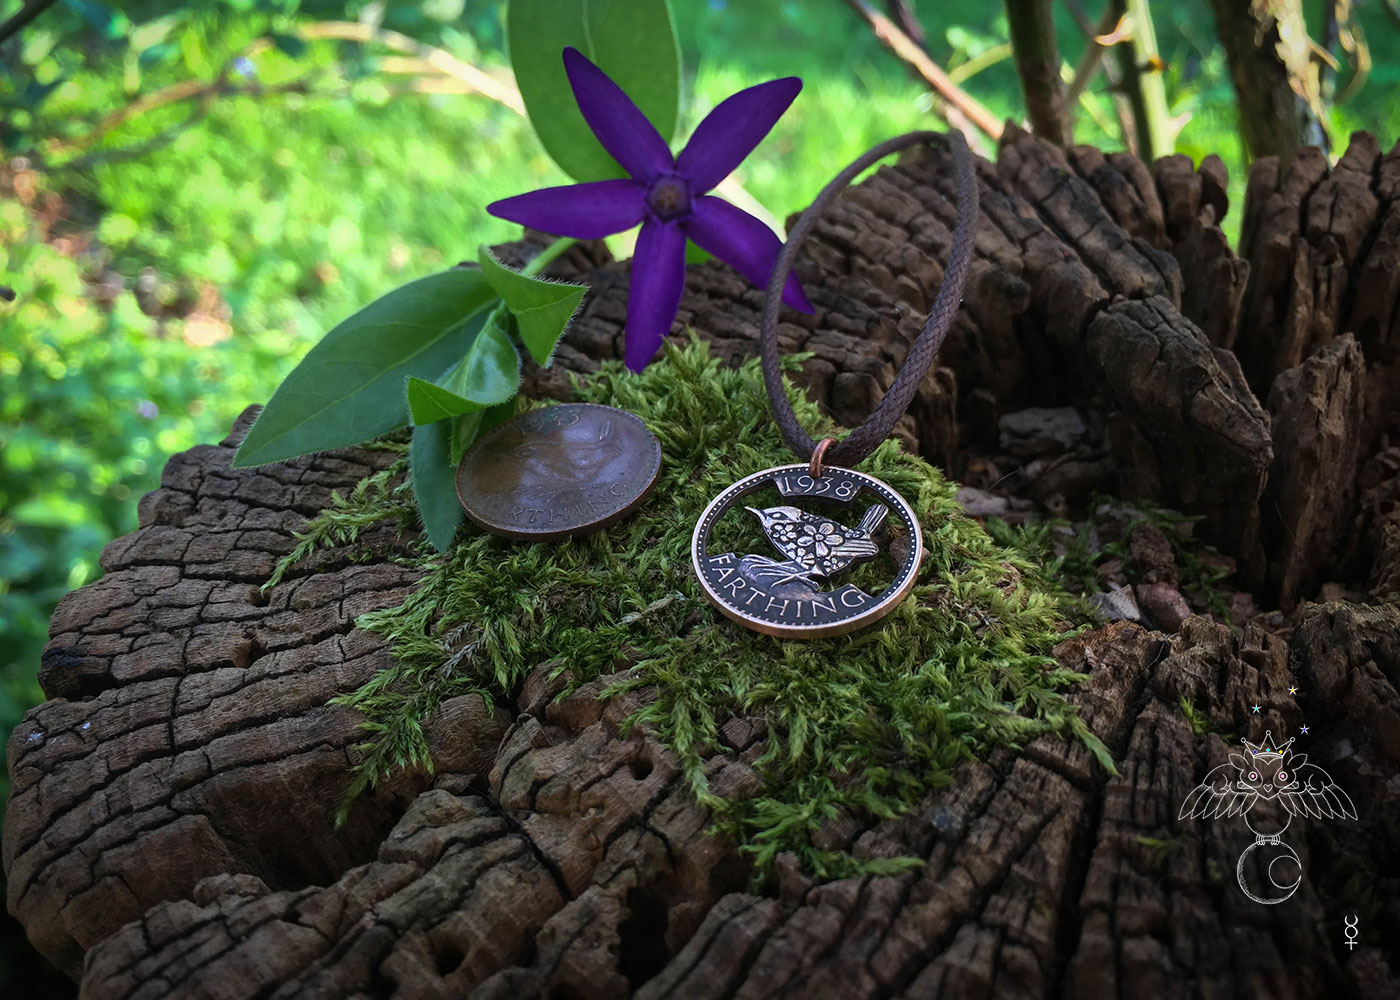 Hand cut, carved and engraved Jenny Wren Farthing coin pendant necklace made in the Hg workshop